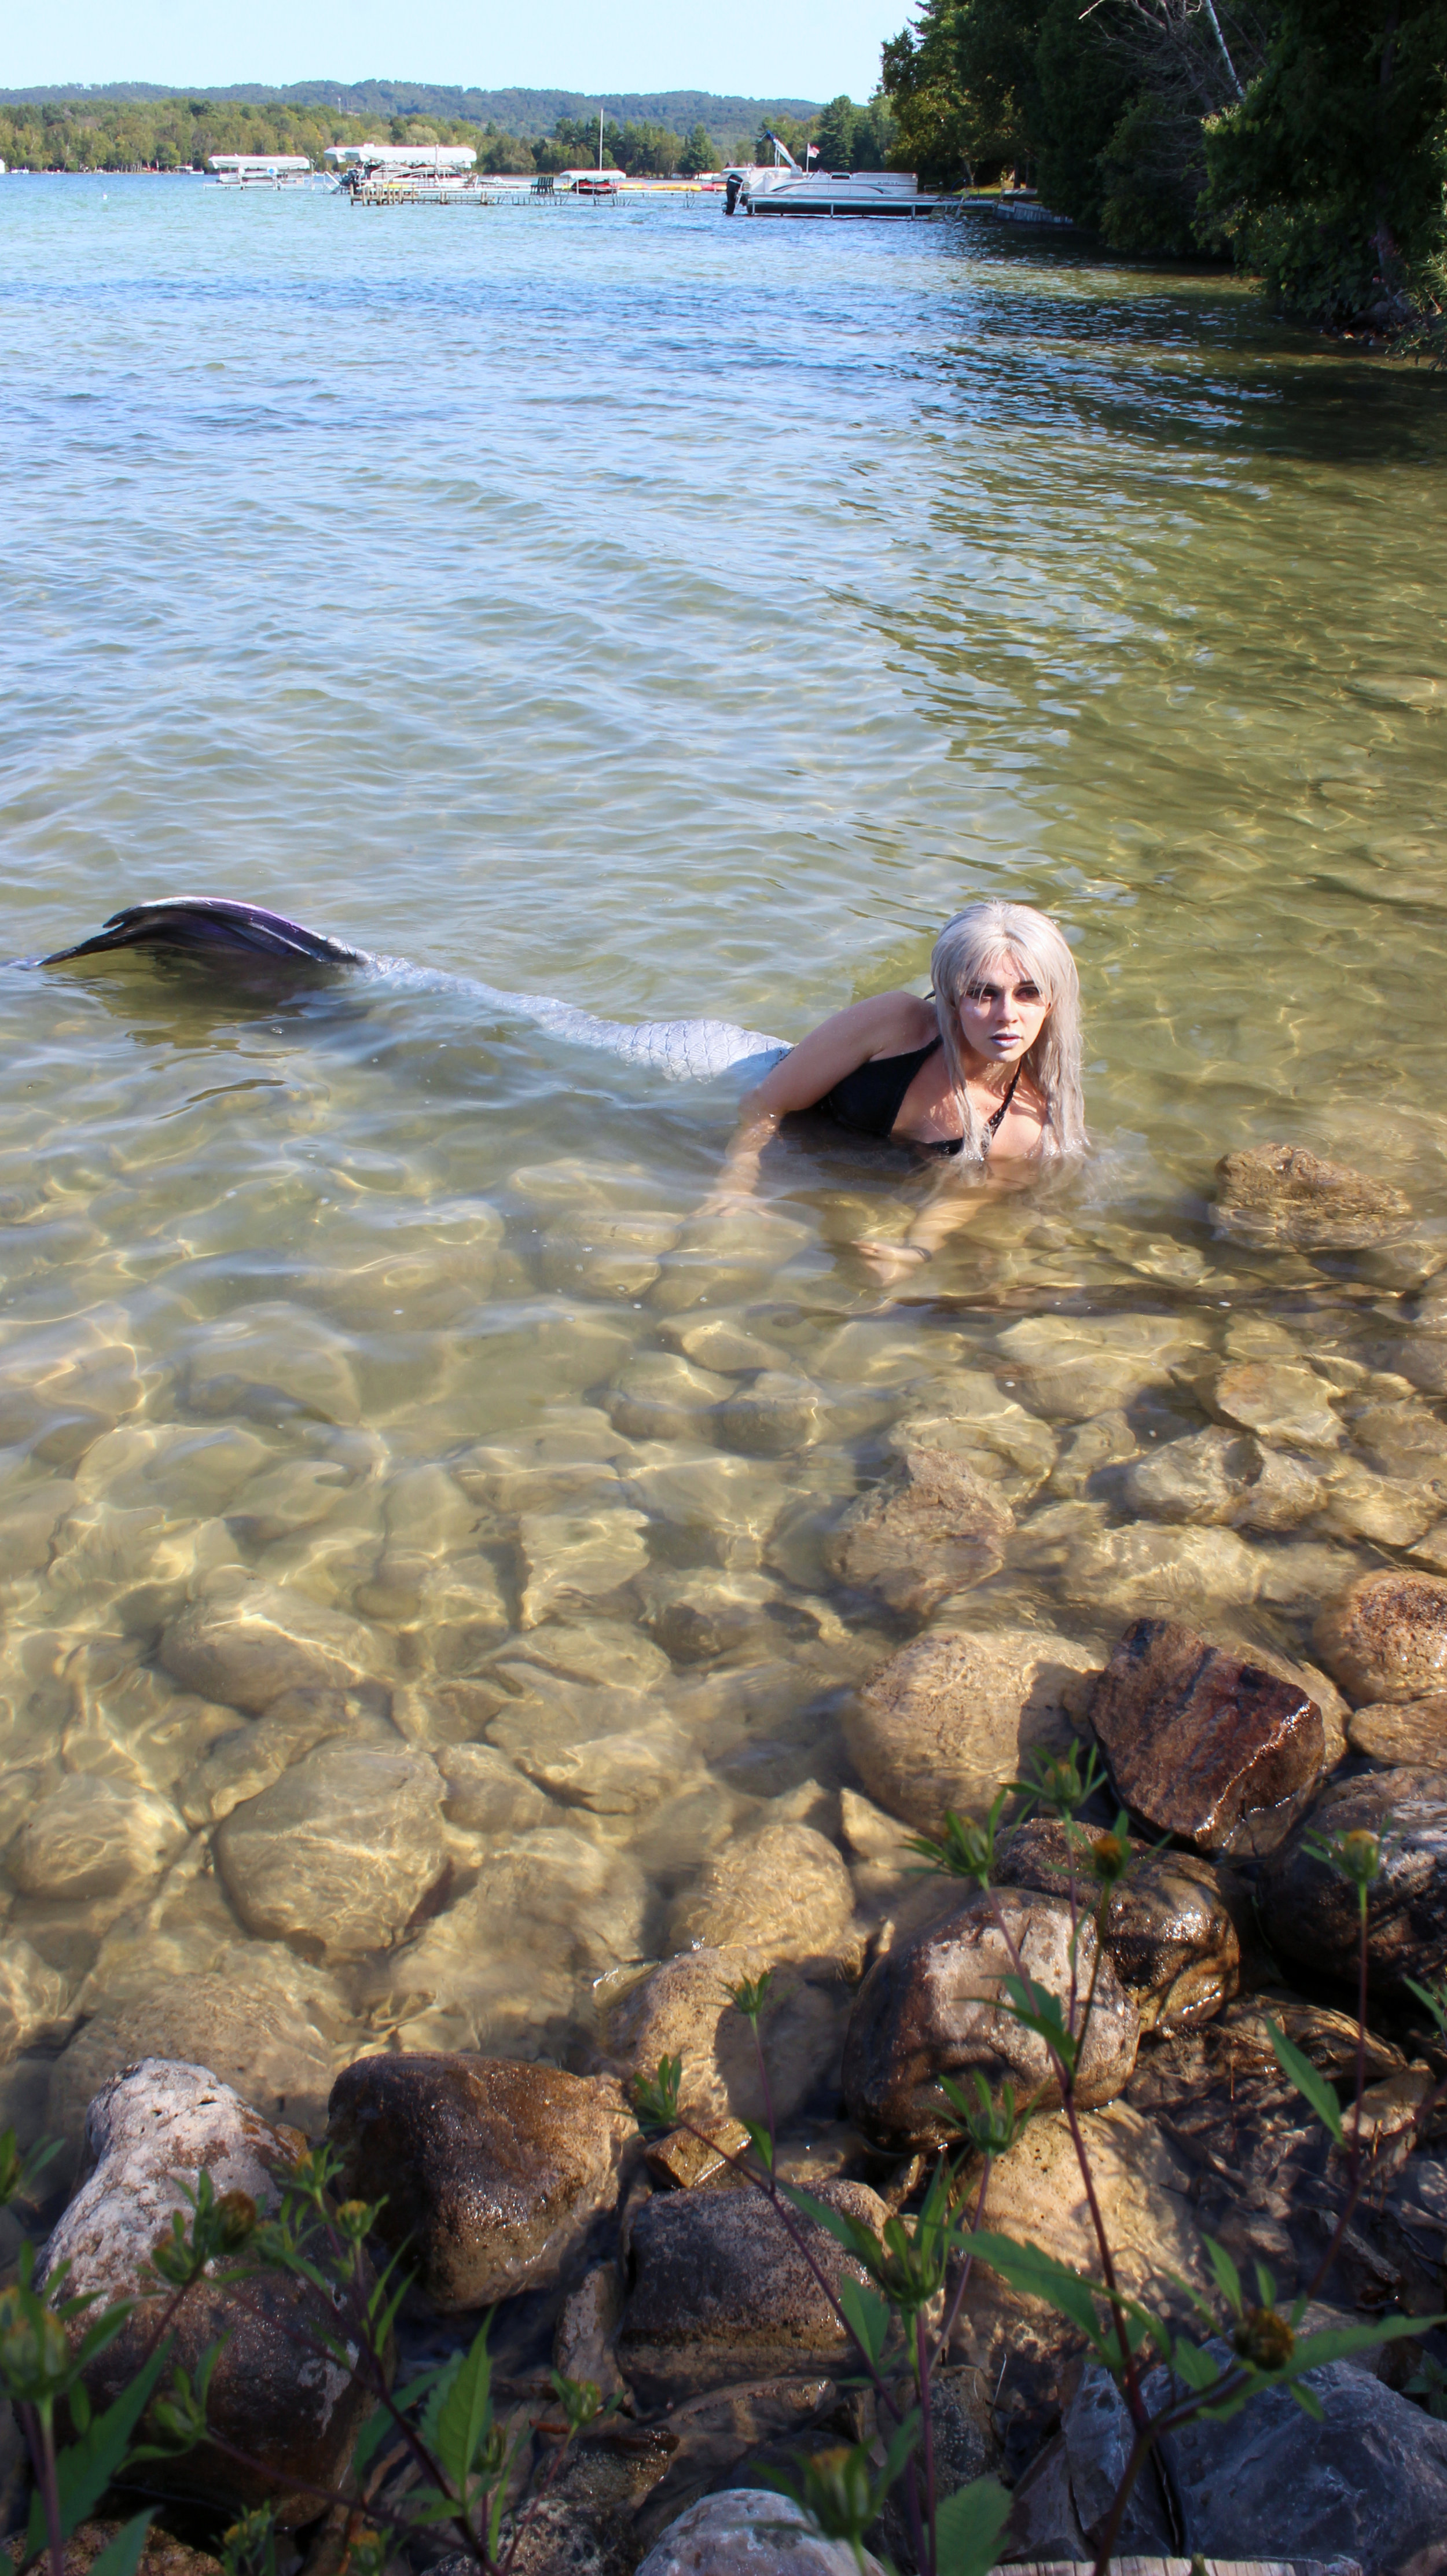 A photograph of a real mermaid. Mermaid Phantom, a professional mermaid cosplayer, is posing near the shore in a small Michigan lake.